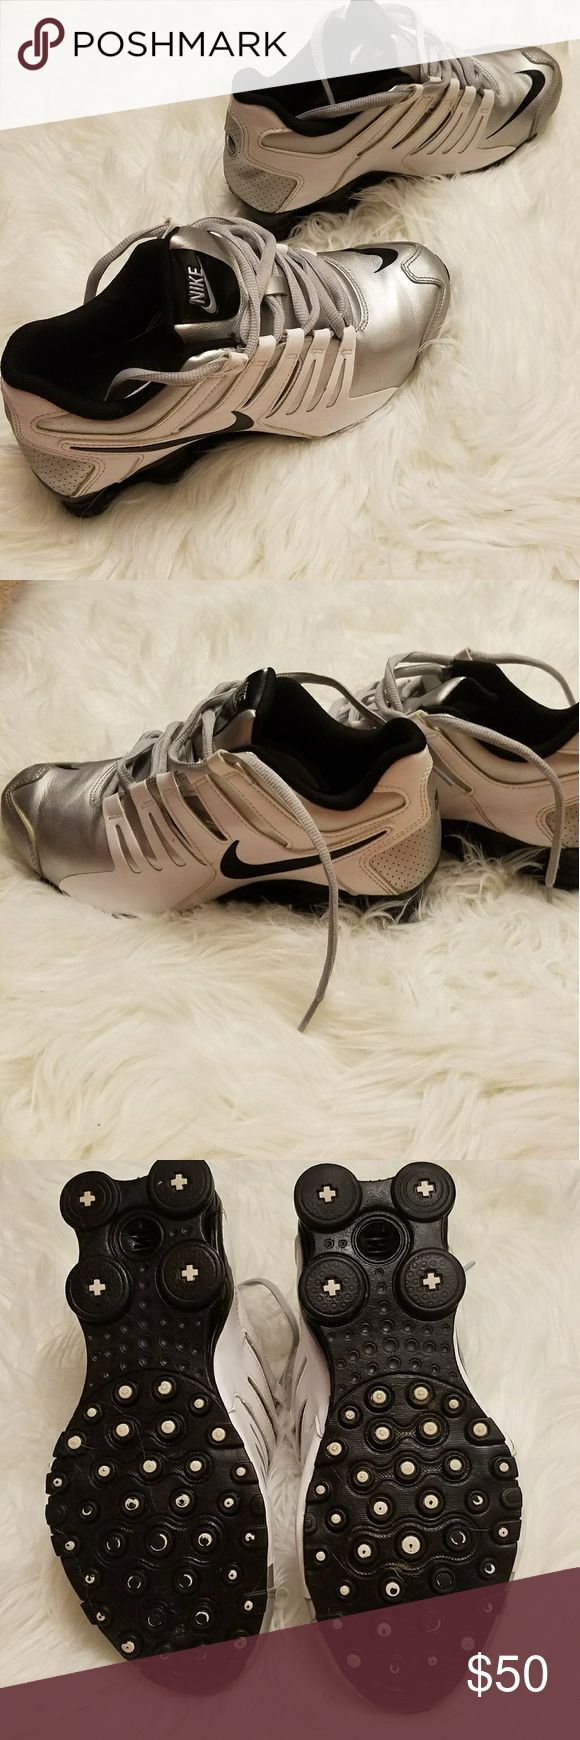 Nike shocks Worn a handful of times. Realized these aren't my style. They're a size 8. Silver black and grey. Feel free to make an offer ! Nike Shoes Athletic Shoes